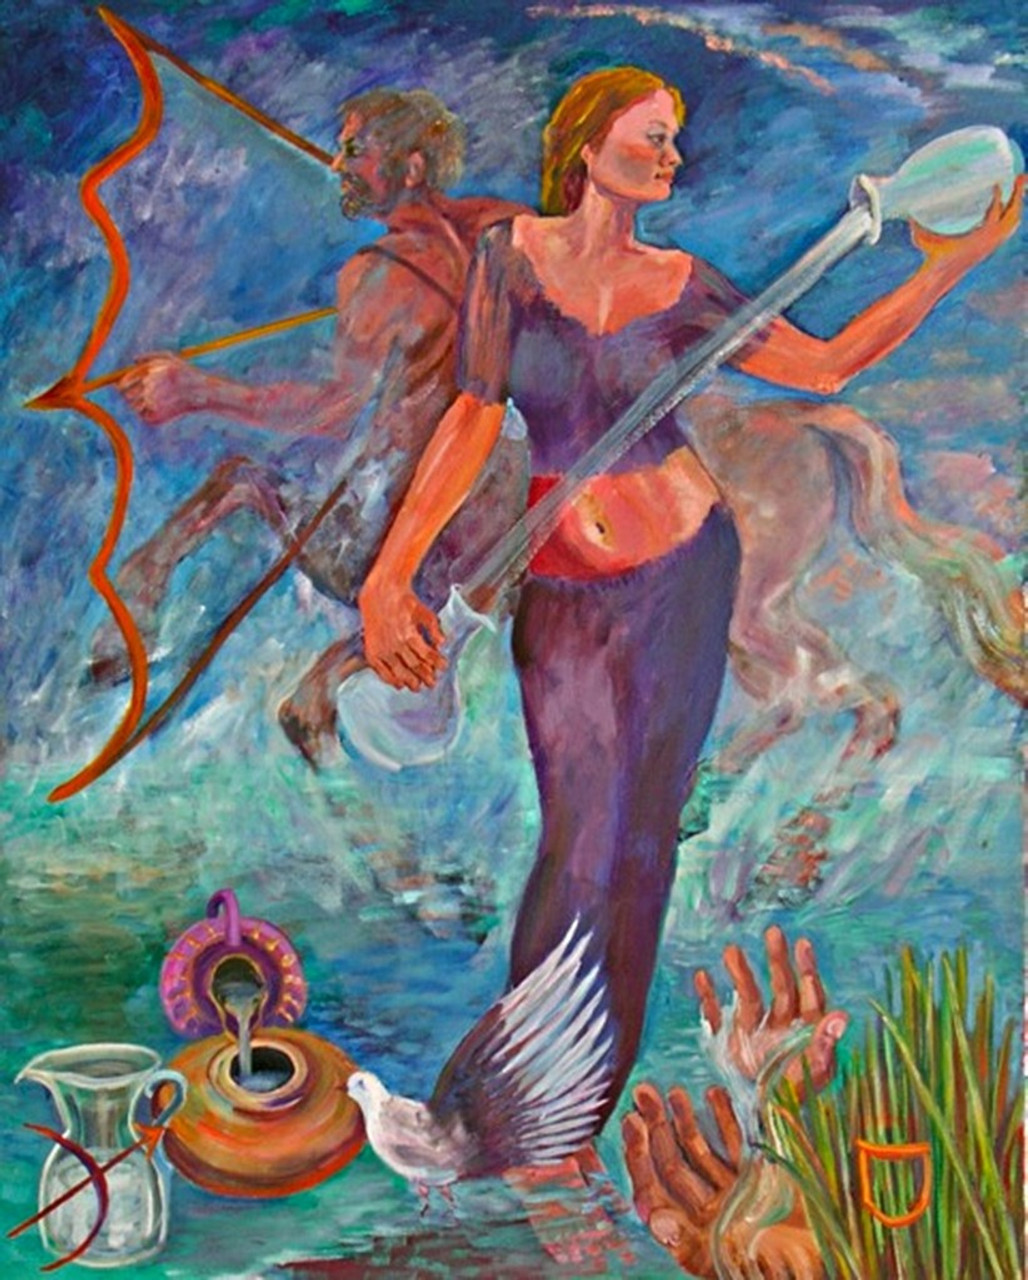 Thelma Appel, TEMPERANCE from the Journey of the Tarot Series, 2009